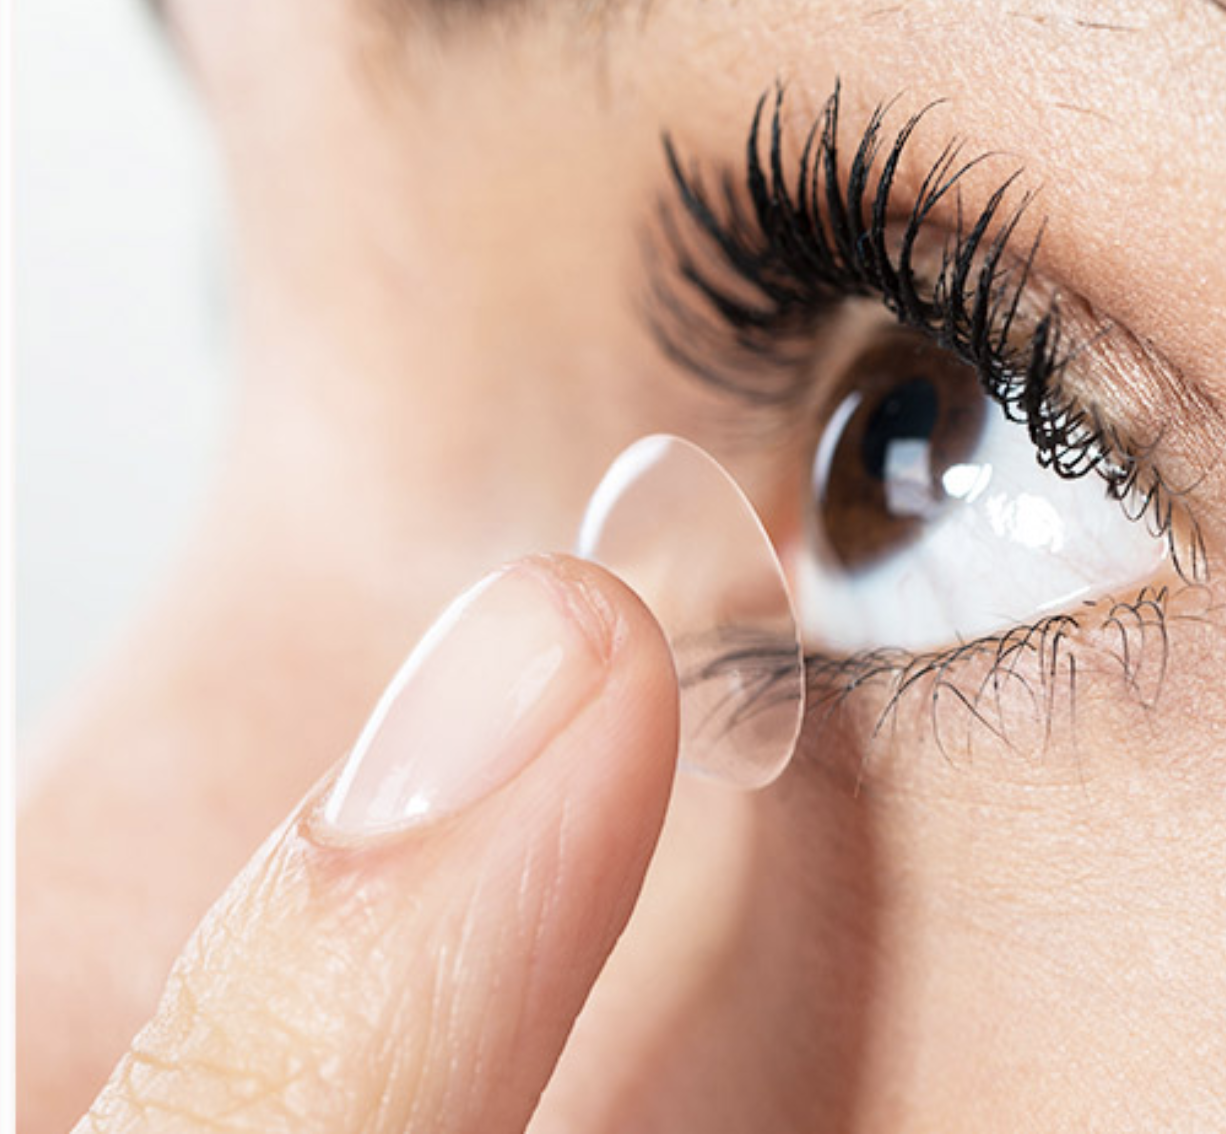 fd57f7fdb13f Don't throw those contact lenses down the drain | ASU Now: Access ...